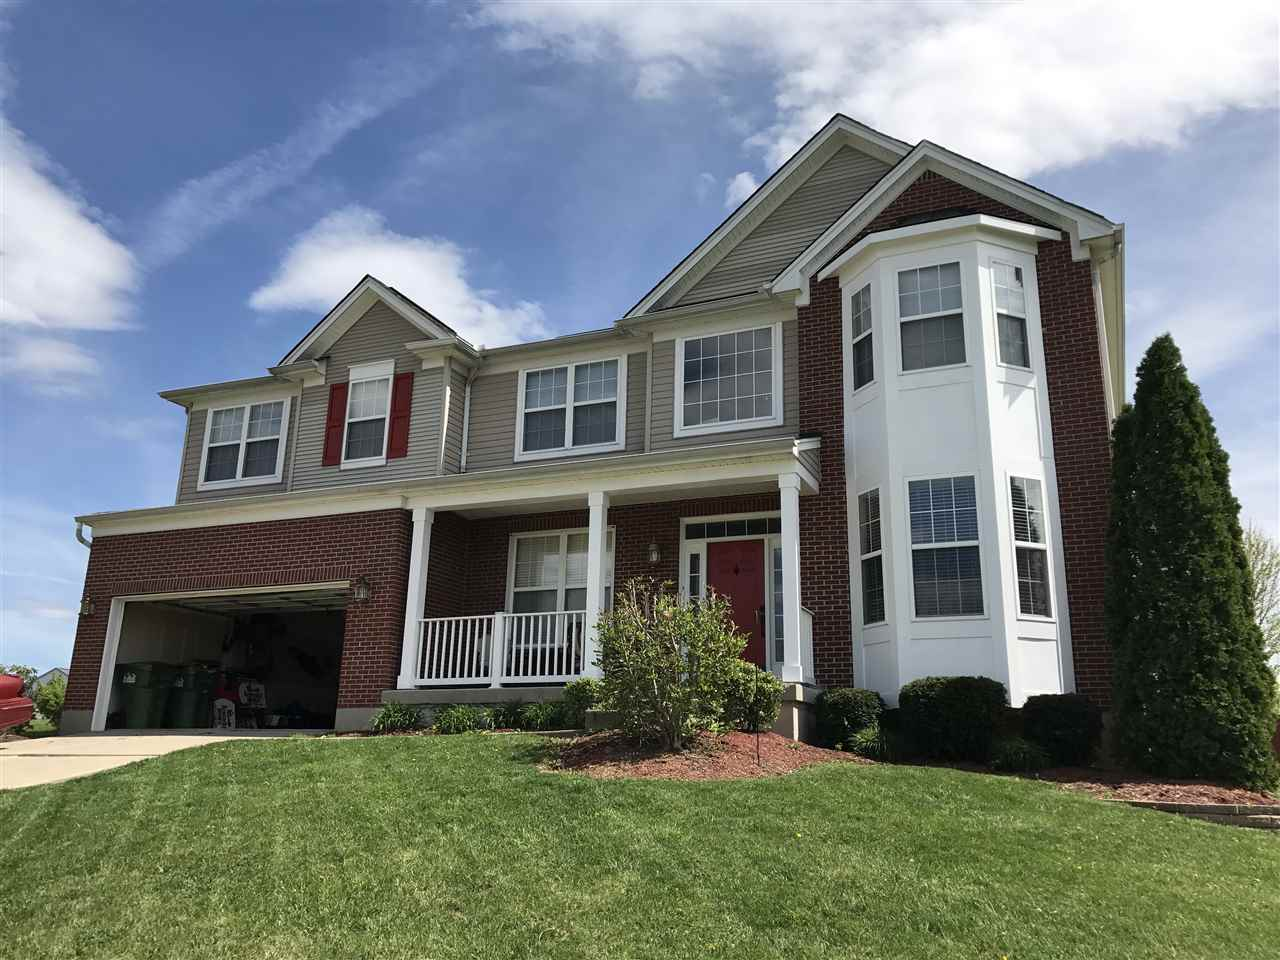 Photo 1 for 4807 Open Meadow Independence, KY 41051